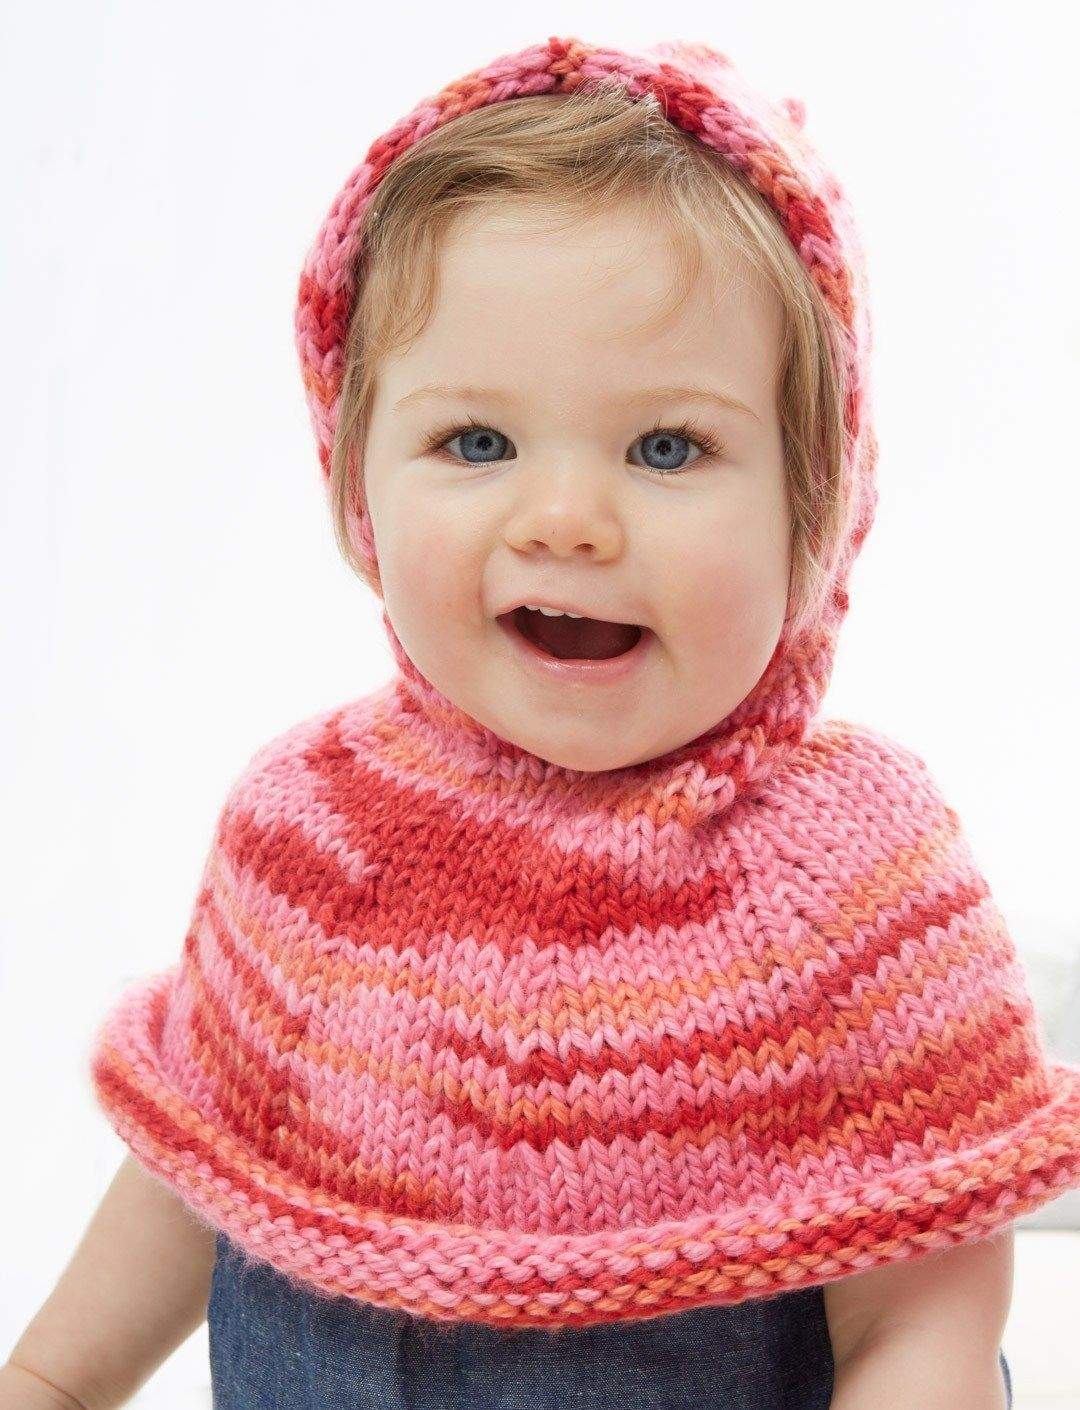 Knitted Baby Poncho Patterns Free Images - handicraft ideas home ...